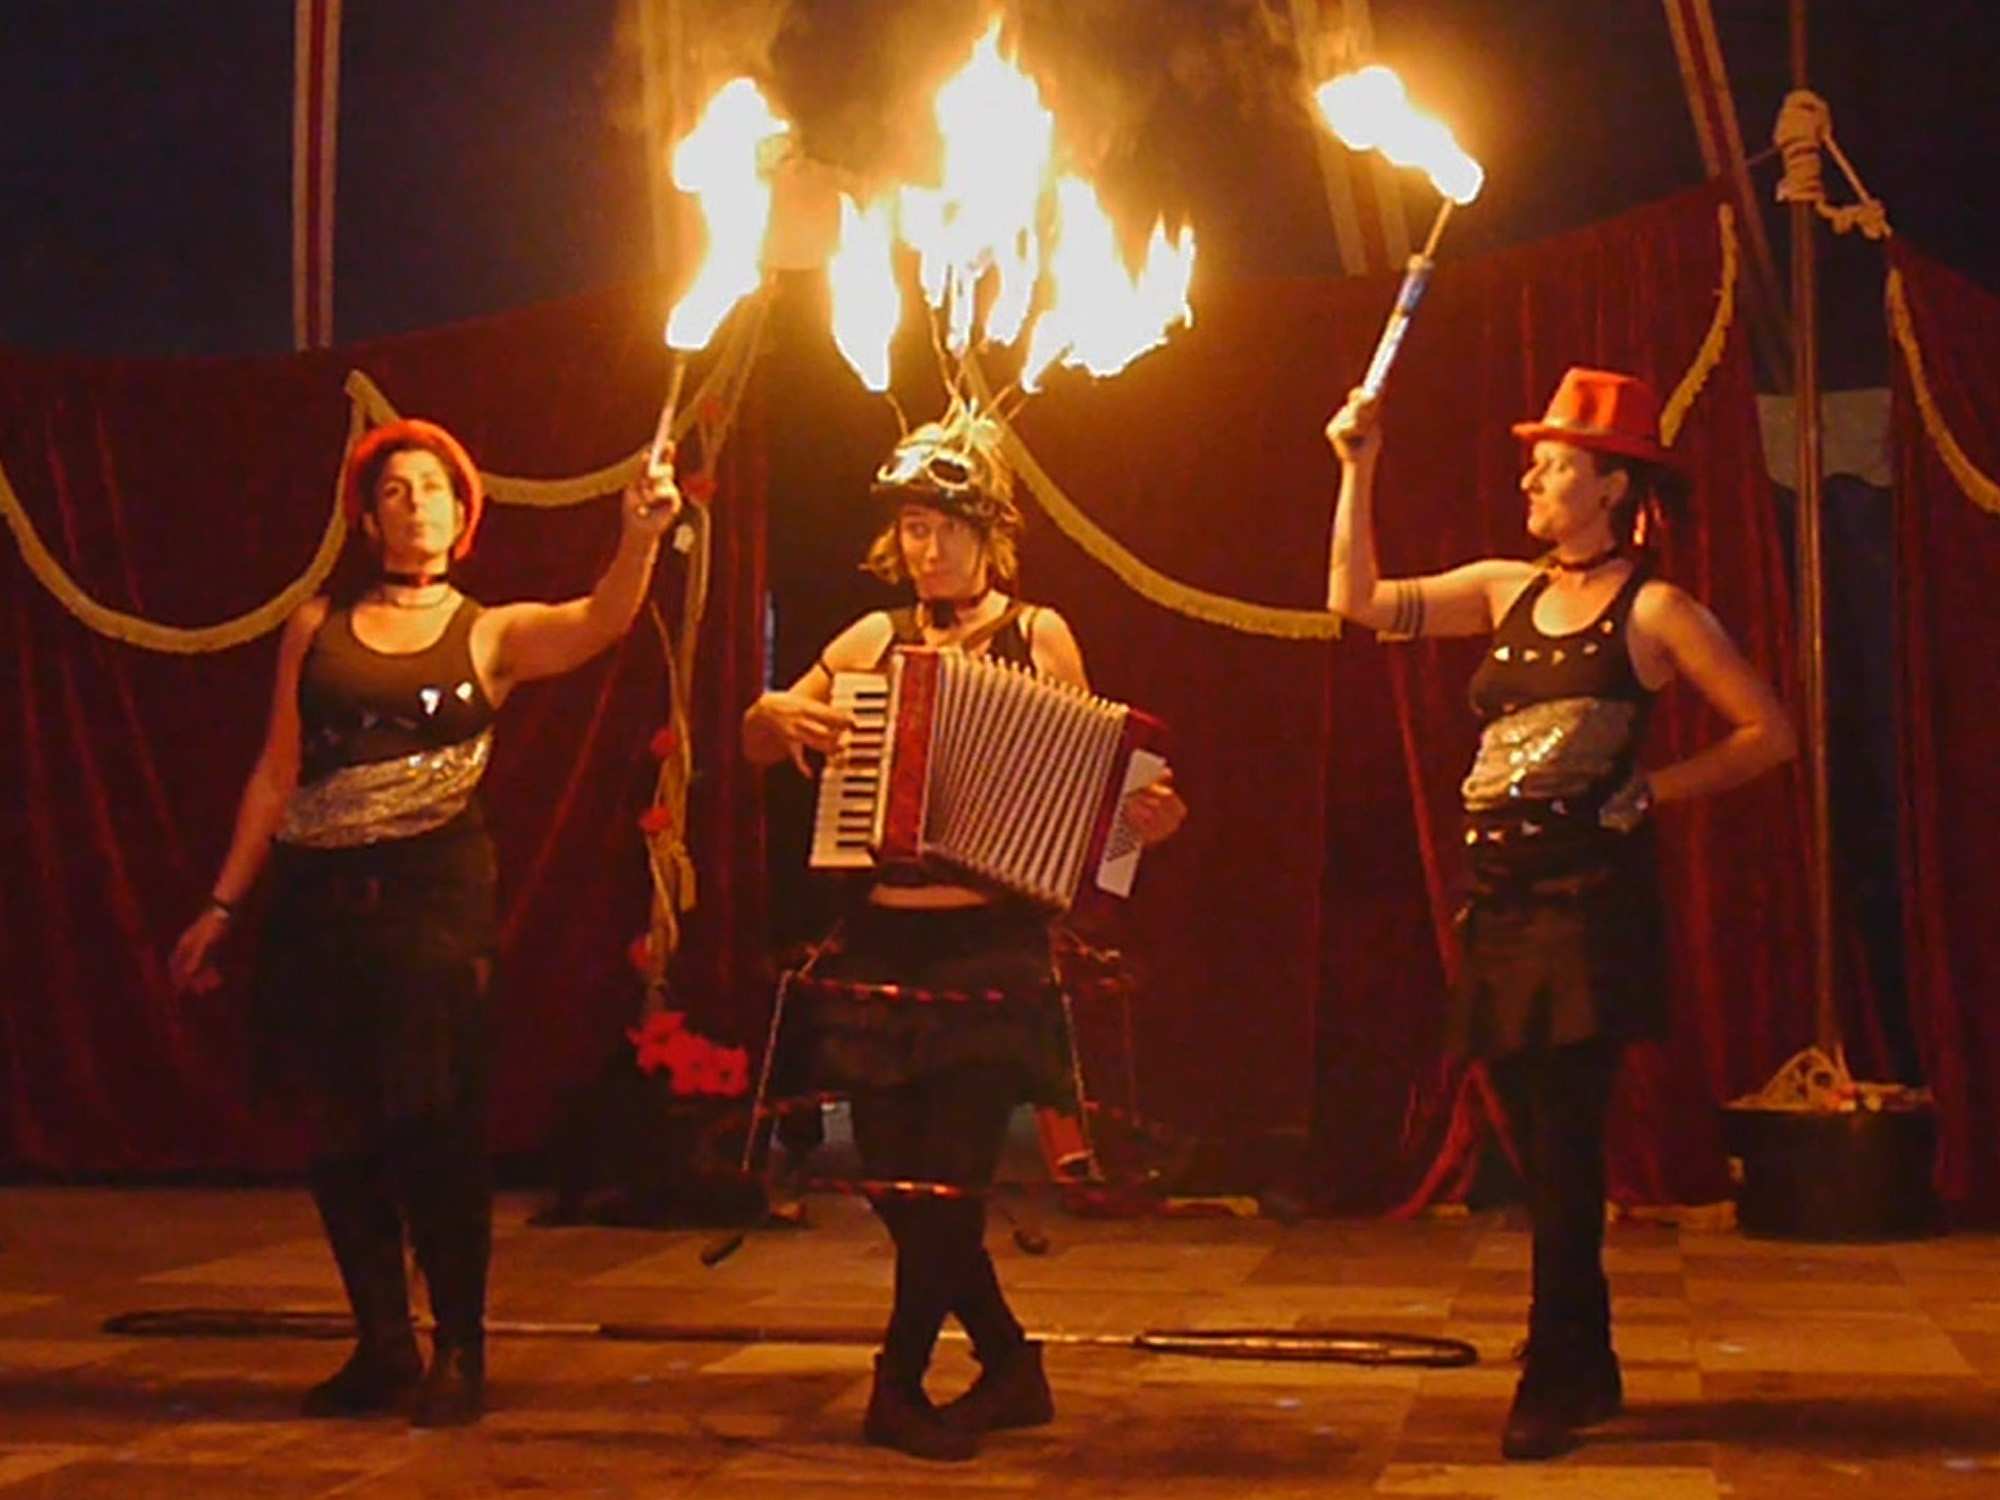 the-pyrocircus-ladies-kuenstler-hutfestival-2019.jpg